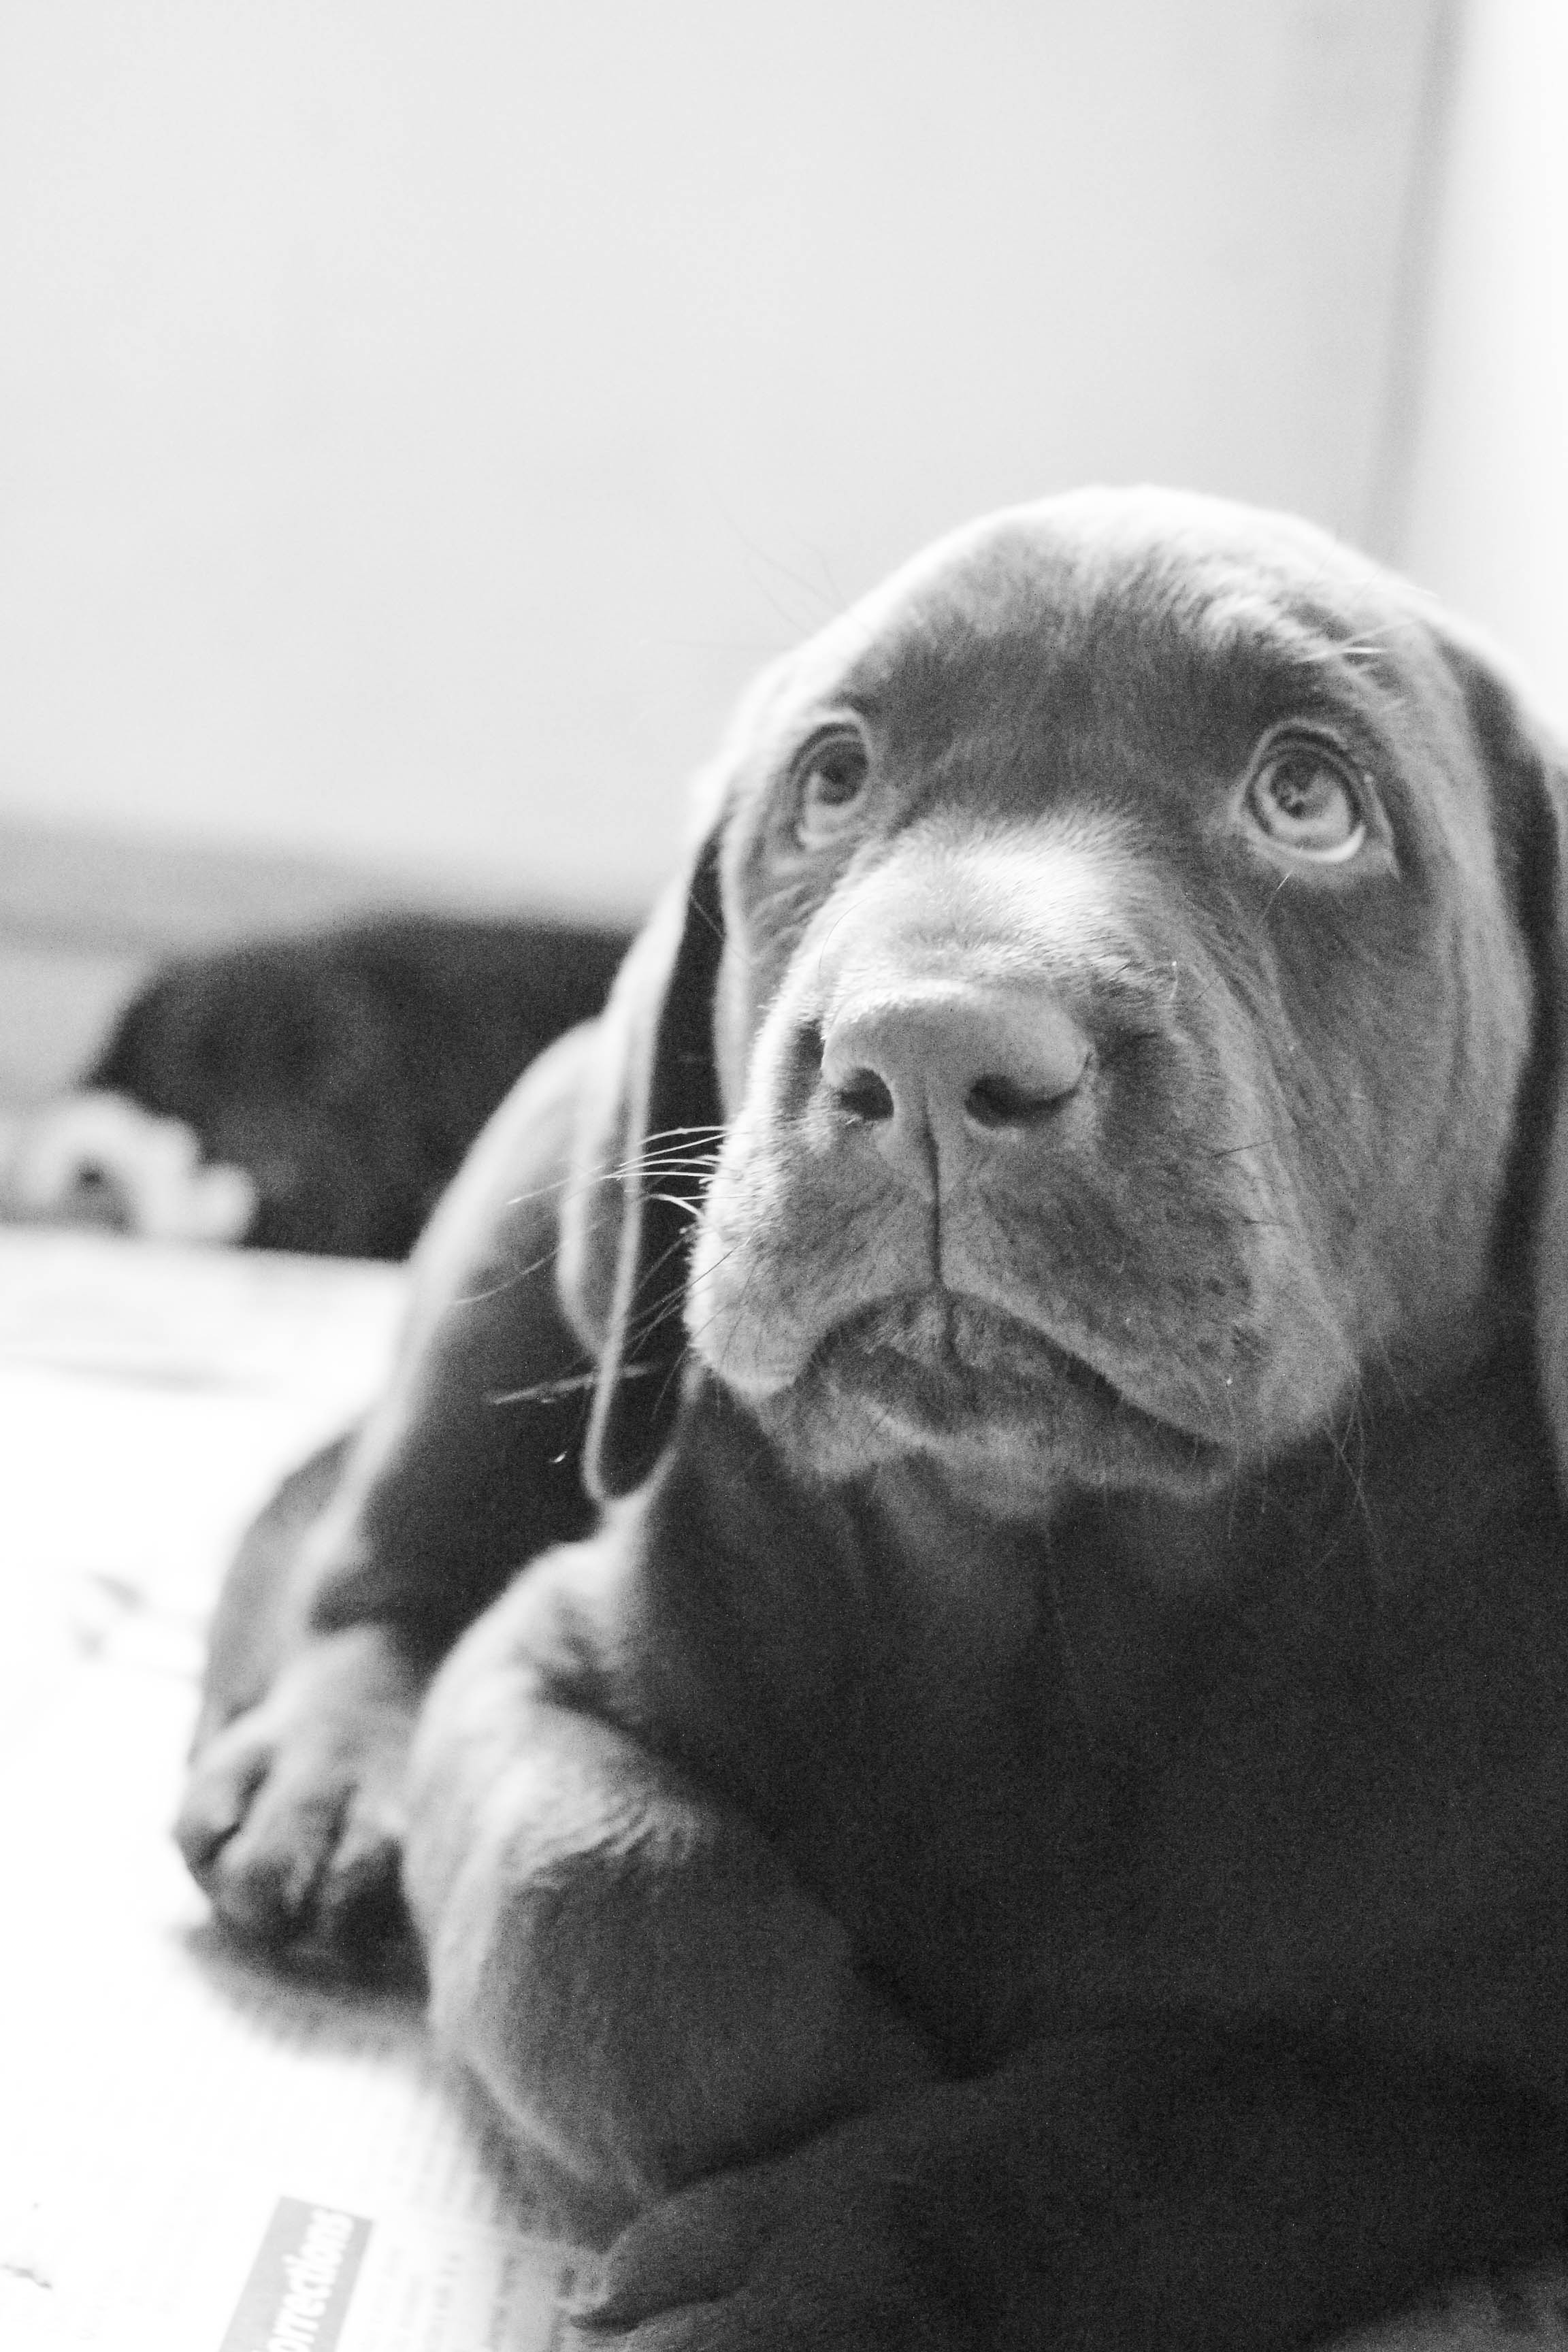 Chocolate-lab-puppy-I-want-one-wallpaper-wp5205176